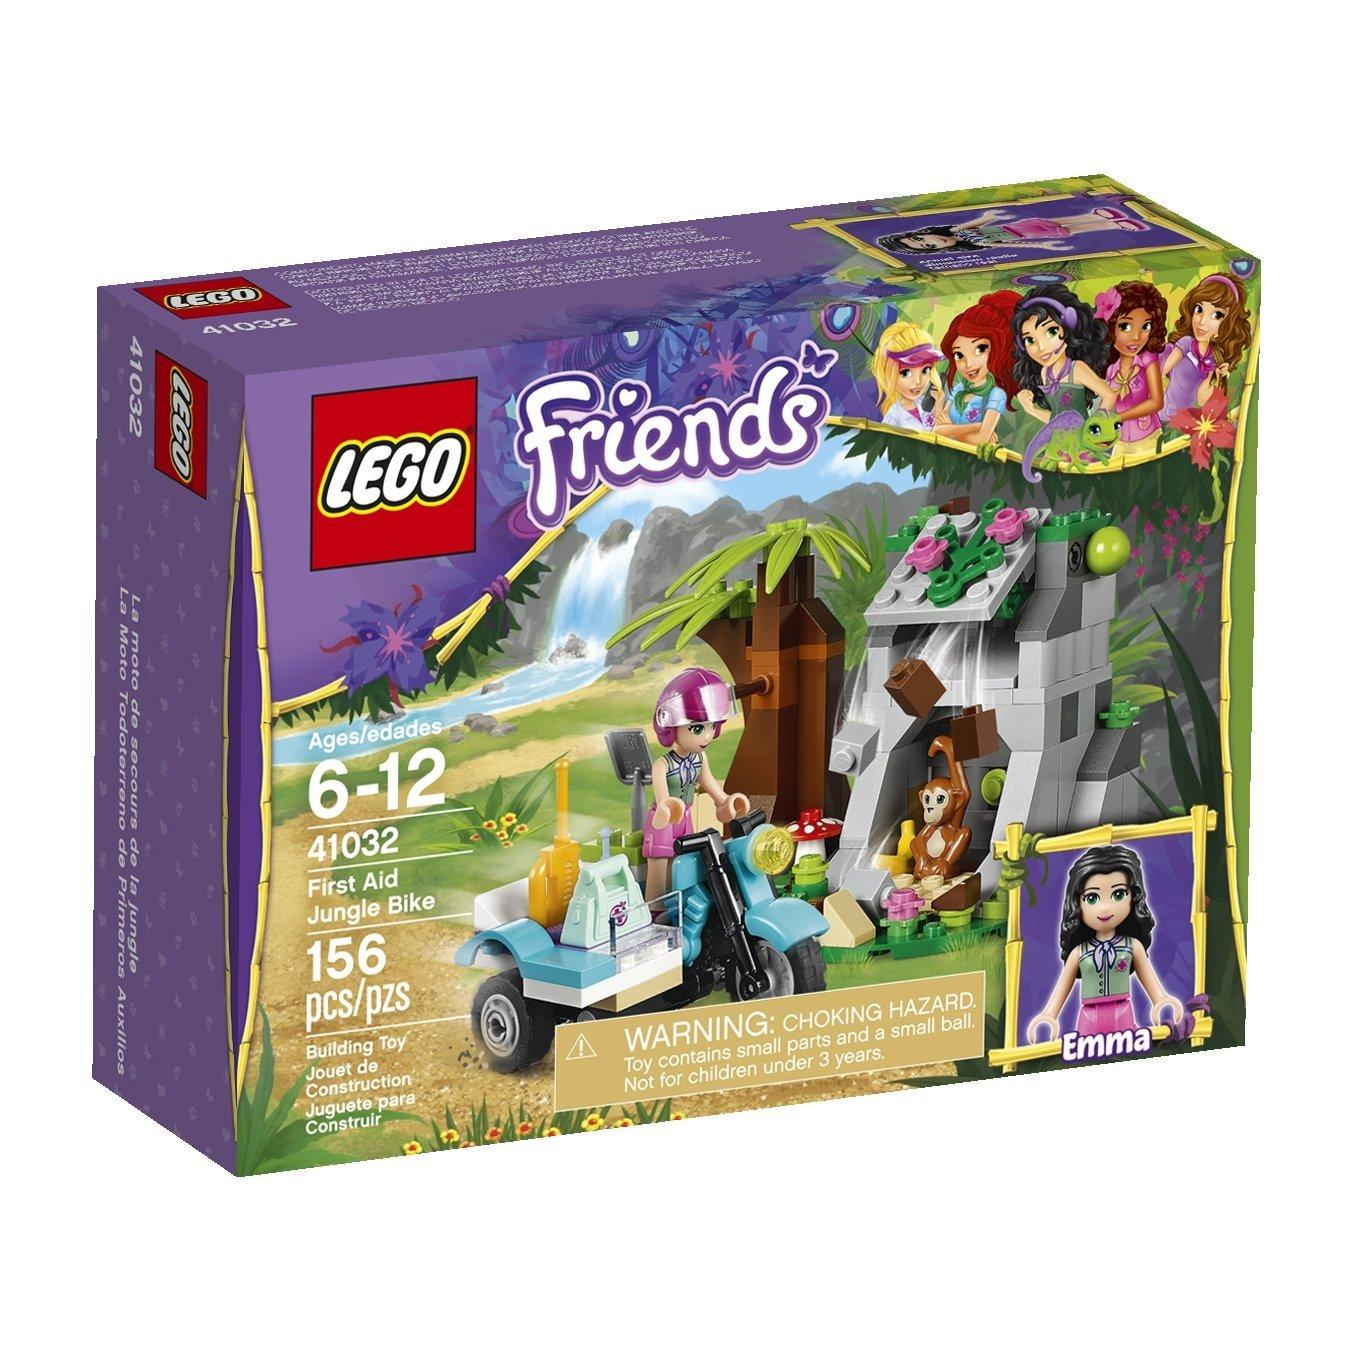 Lowest Price Ever! LEGO Friends First Aid Jungle Bike 41032 Building Set